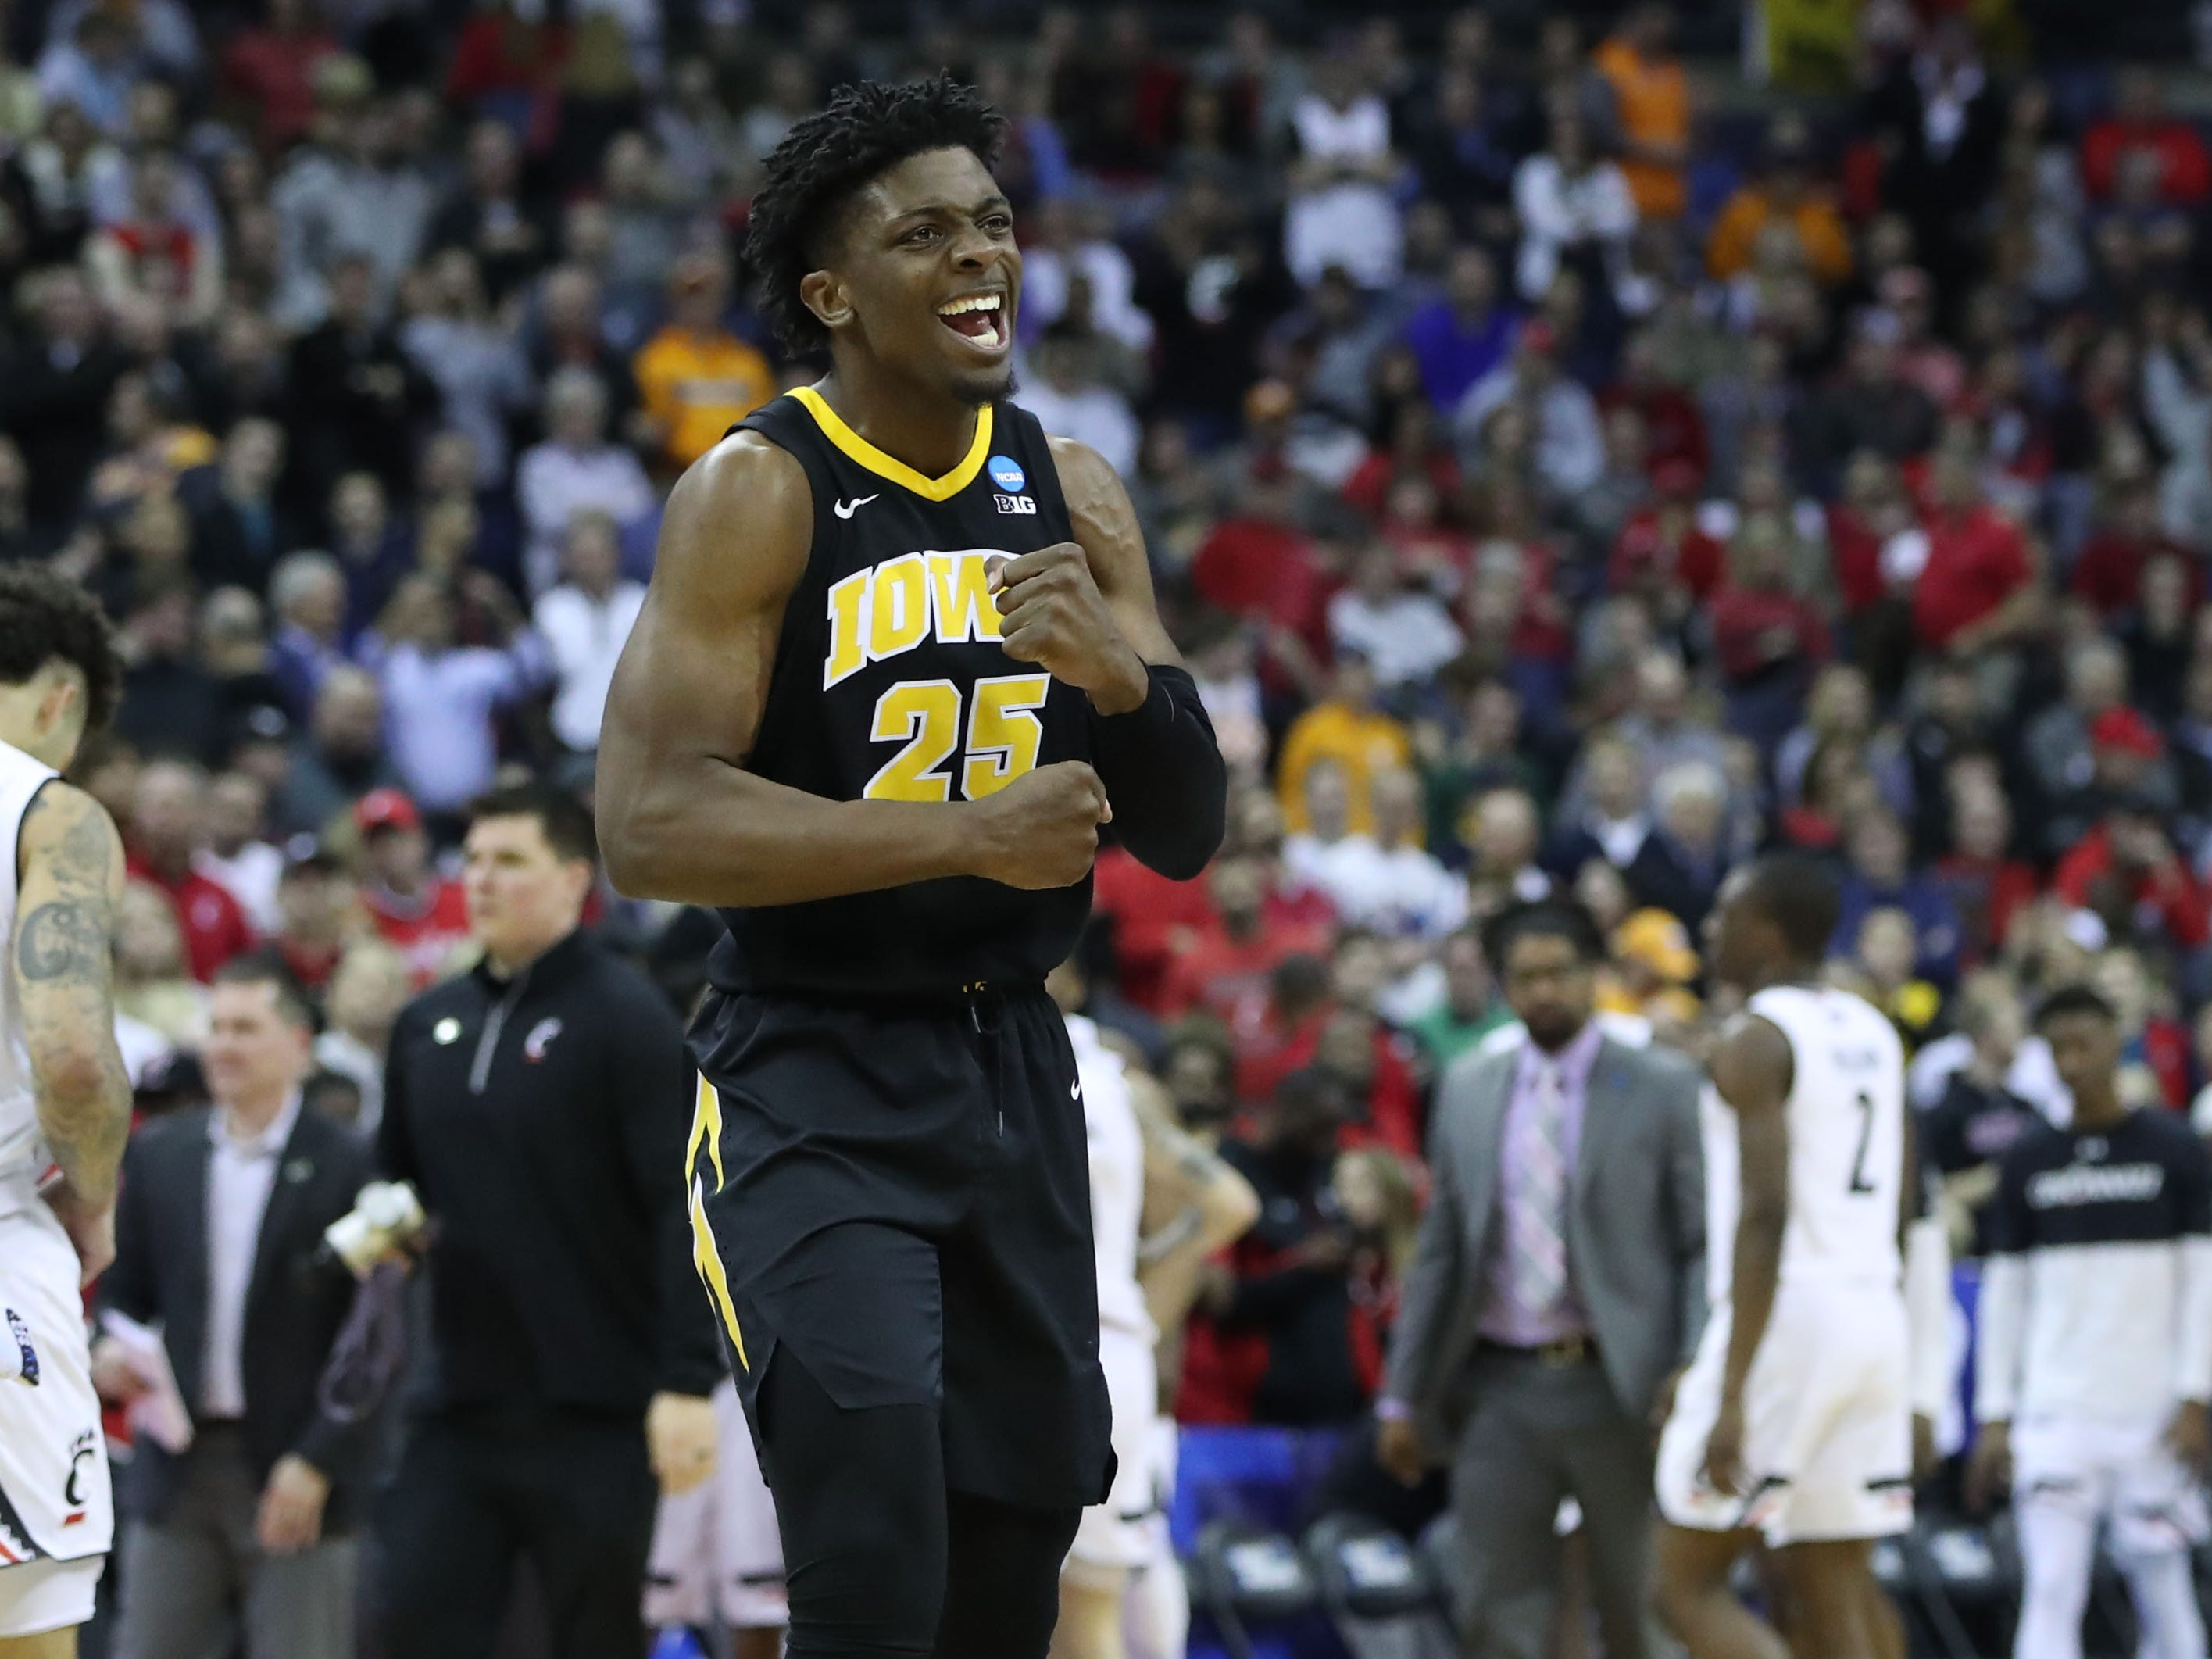 Iowa Hawkeyes forward Tyler Cook (25) reacts to defeating Cincinnati Bearcats  in the first round of the 2019 NCAA Tournament at Nationwide Arena on March 22, 2019.